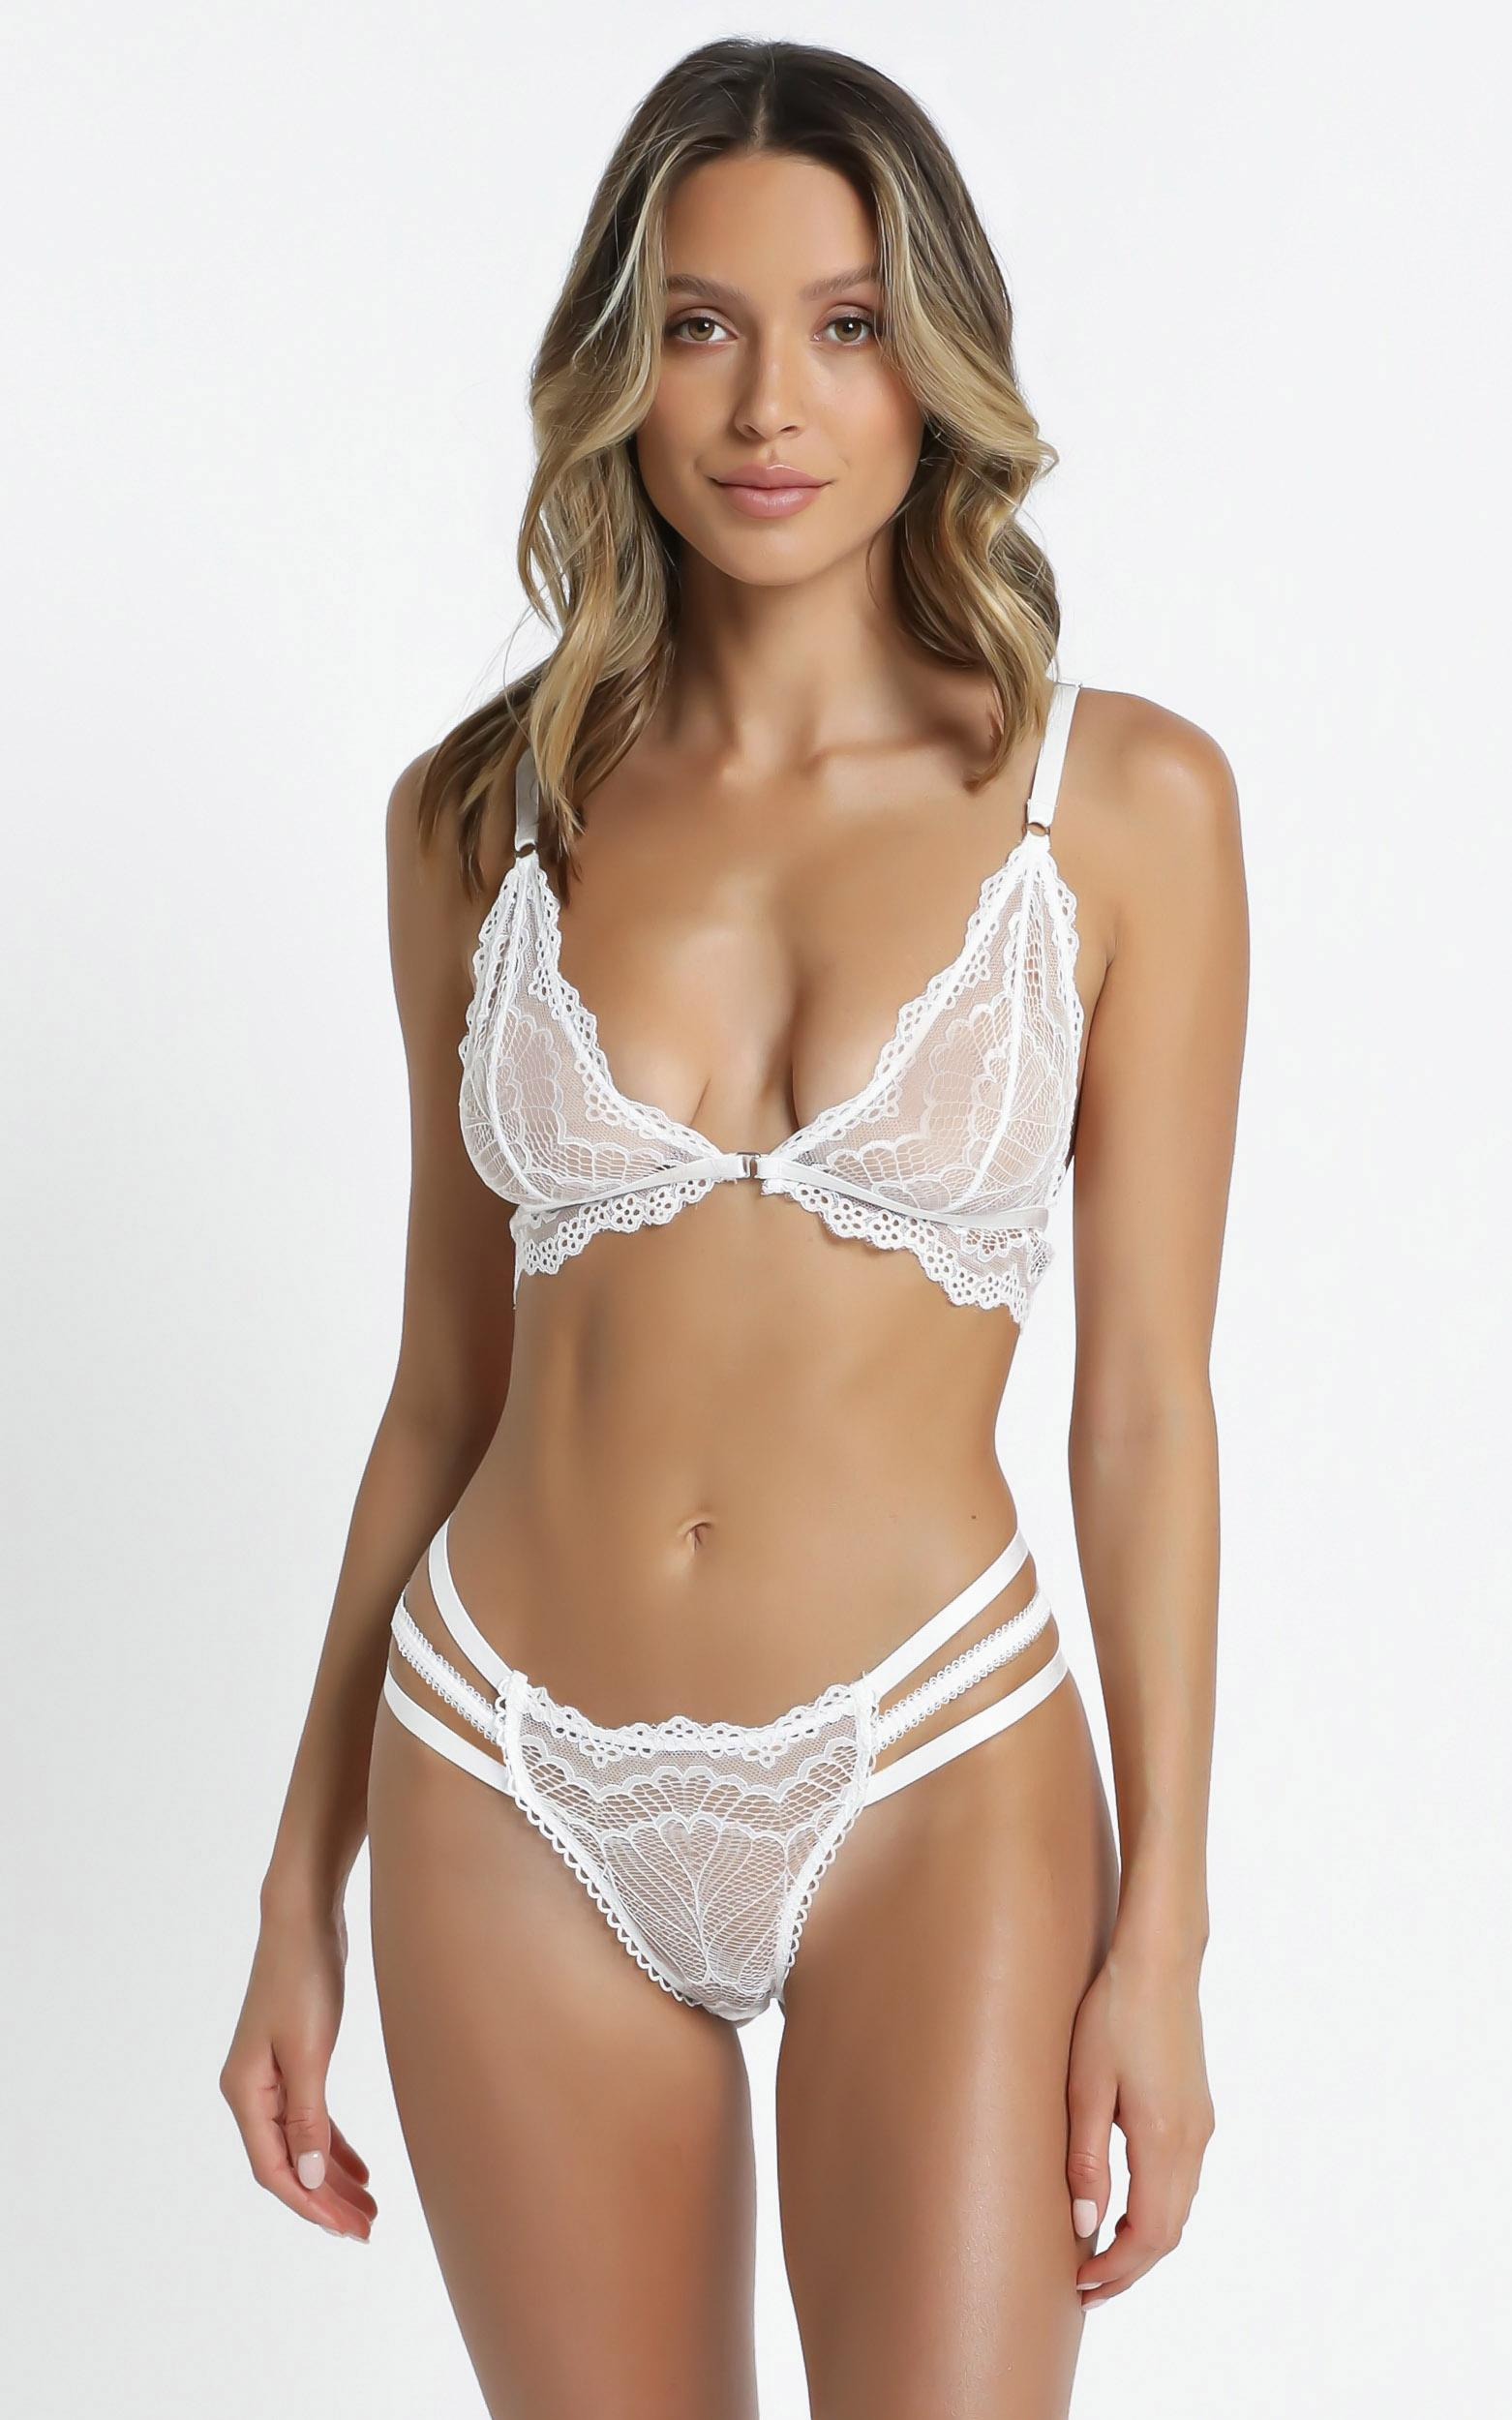 Kat The Label - Vienna Bralette in White - XS, White, hi-res image number null